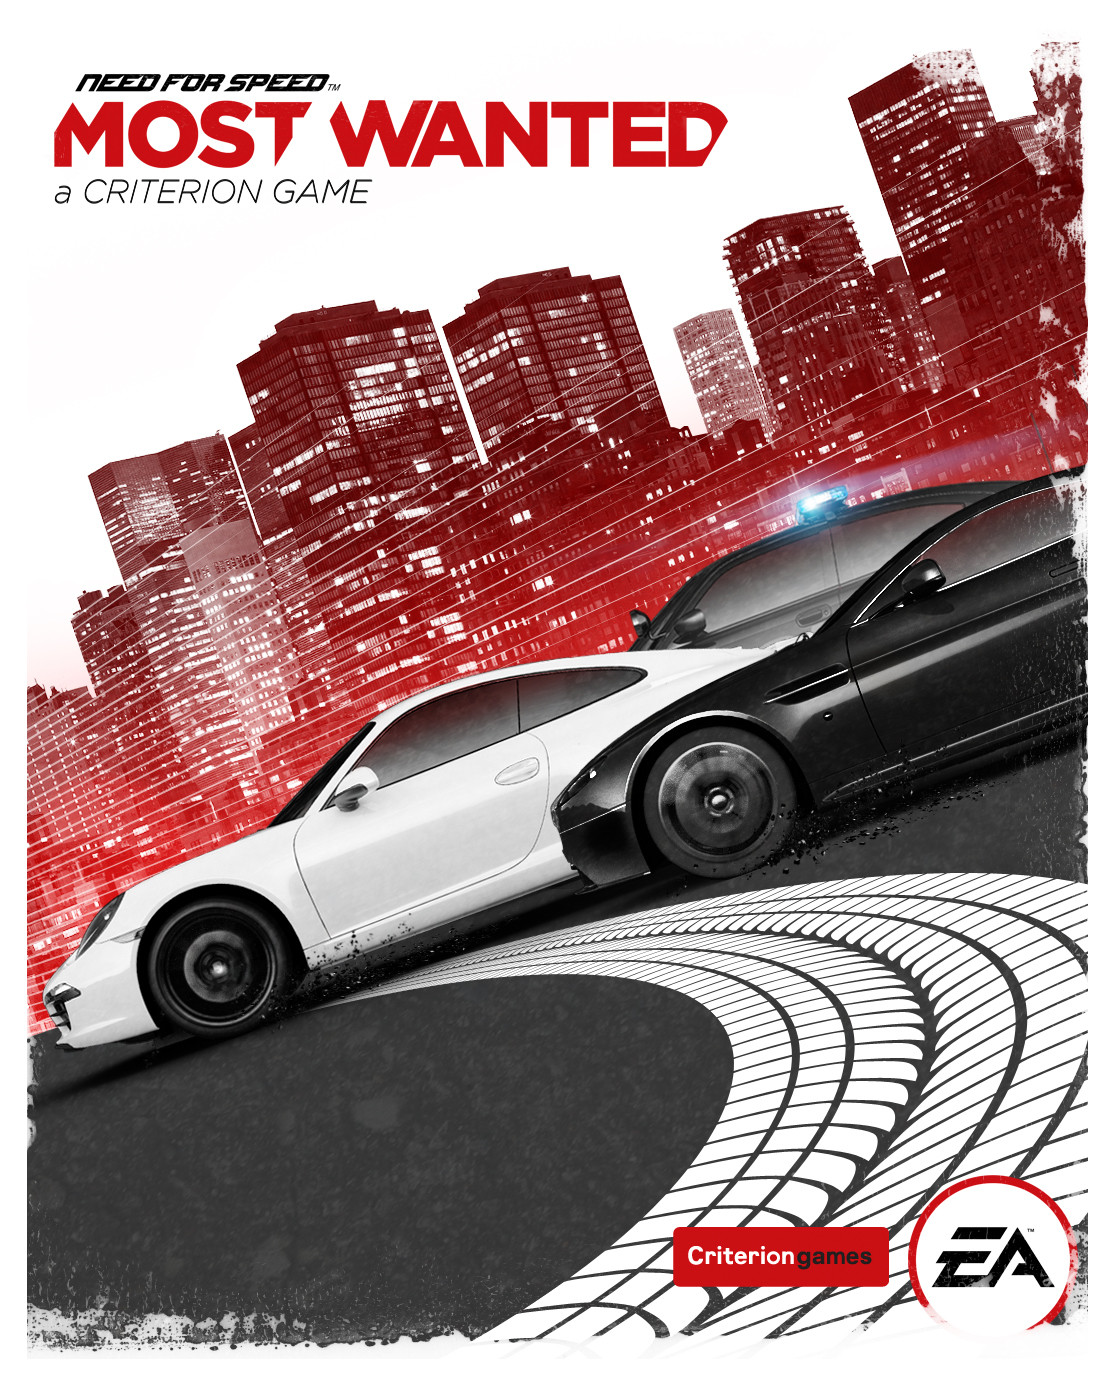 Download need for speed most wanted 2005 game free for pc.